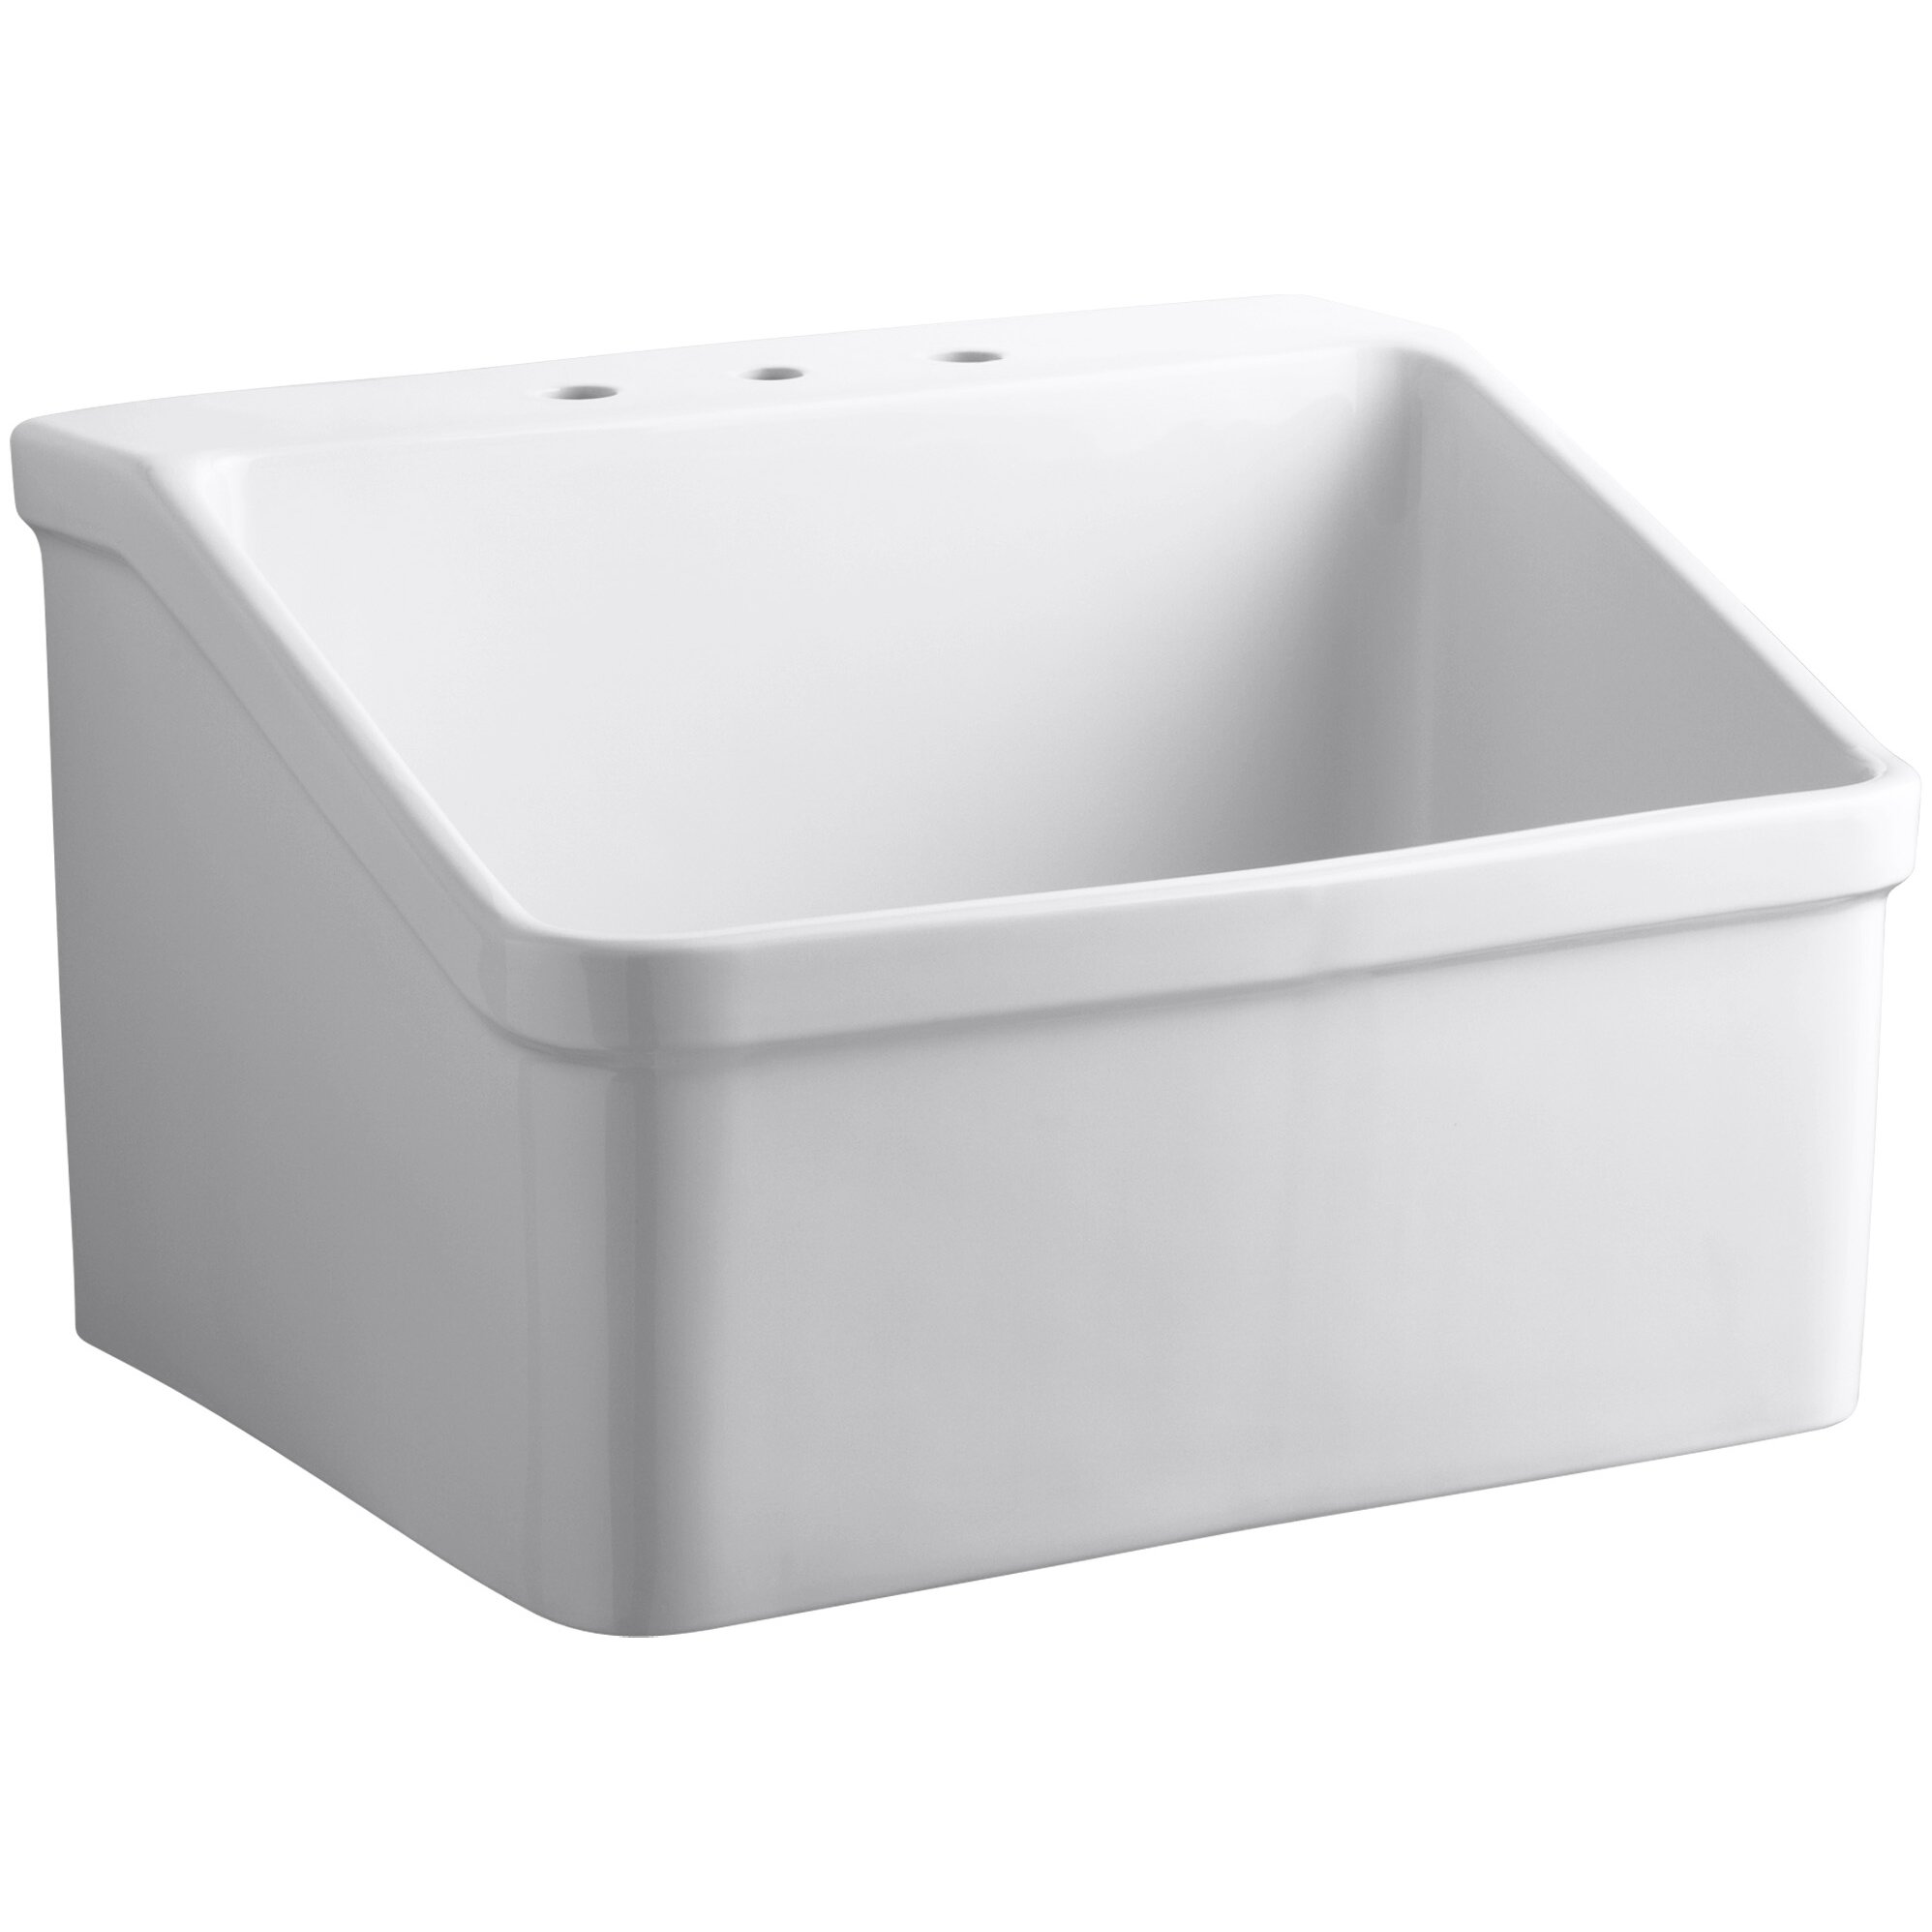 Utility Sink With Cover : ... Mounted Utility Sink with Widespread Faucet Holes & Reviews Wayfair